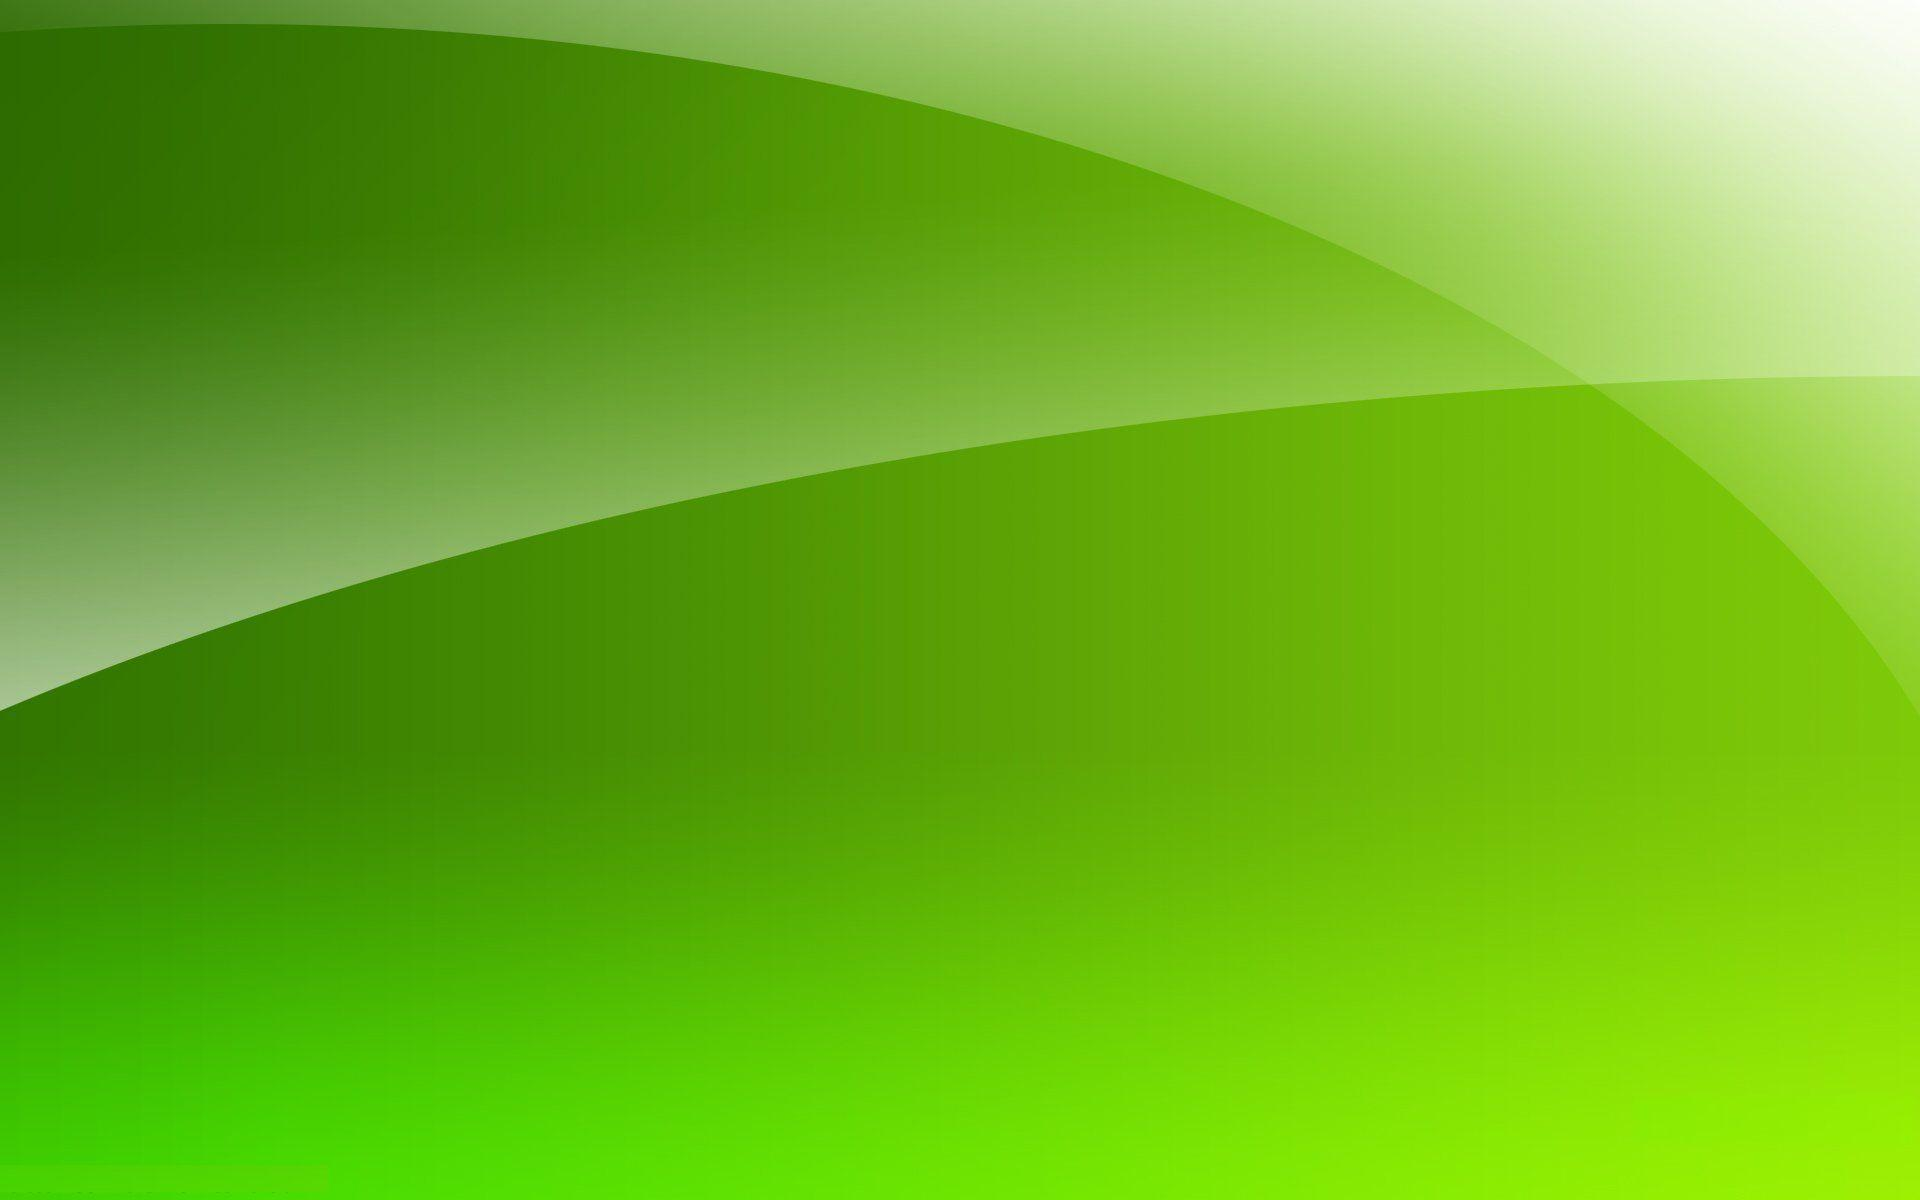 Green Background Images Hq - Wallpaper Cave